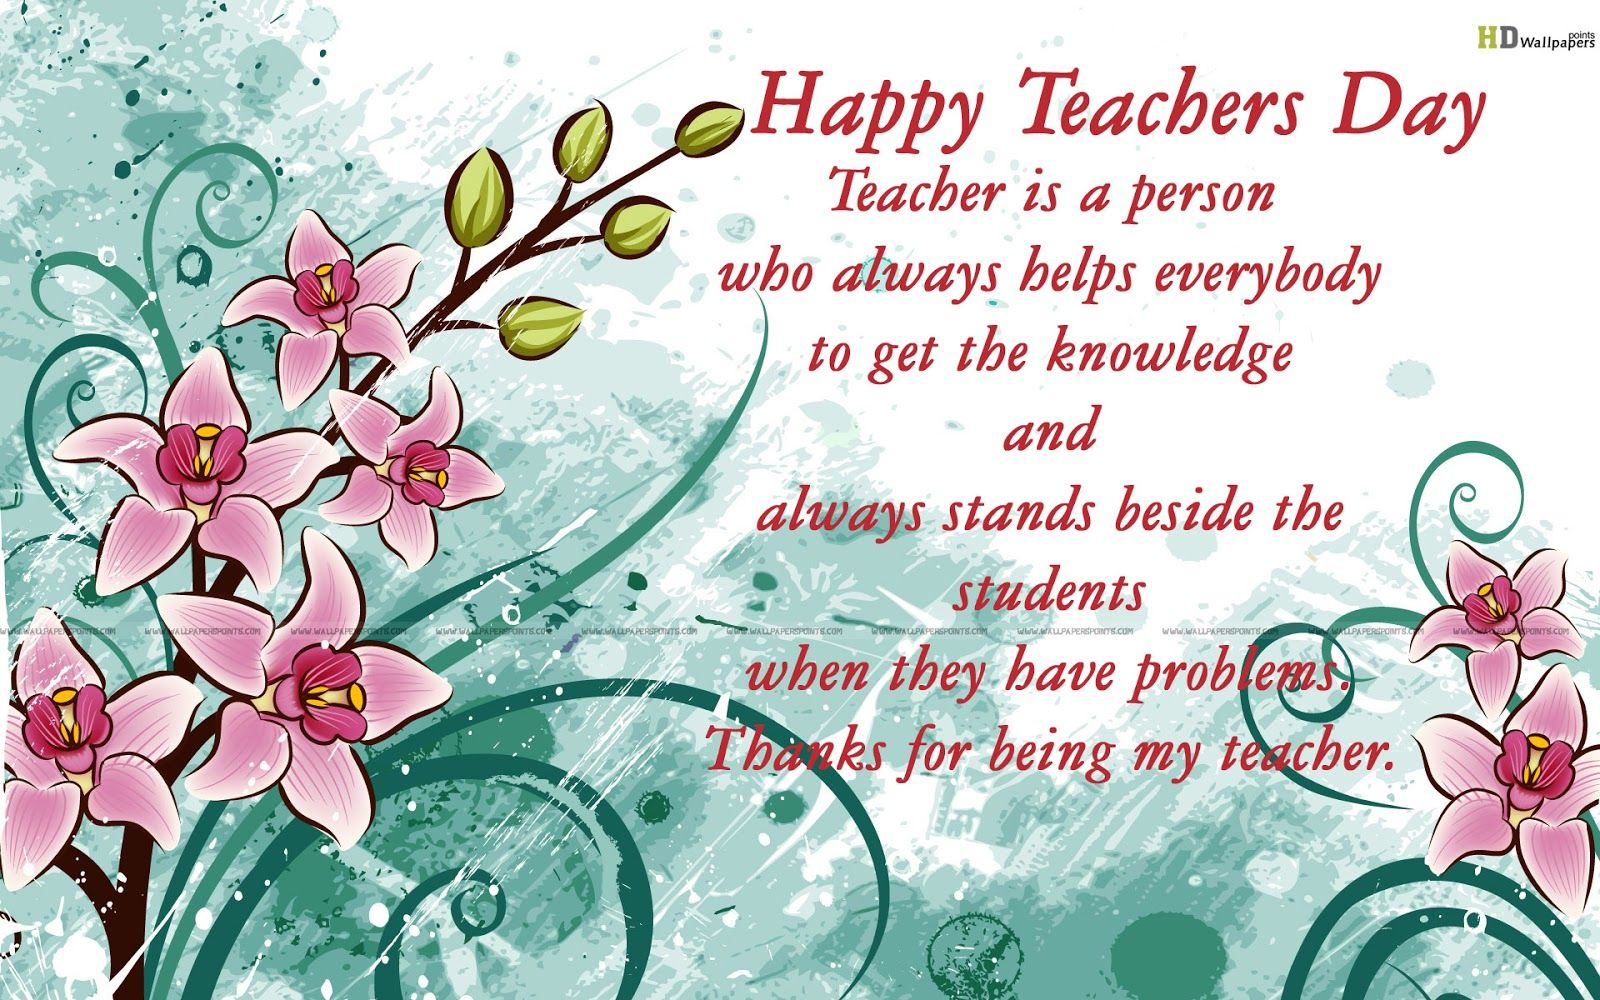 Teachers Day Wishes Images New Collection Happy Teachers Day Wishes Teachers Day Wishes Happy Teachers Day